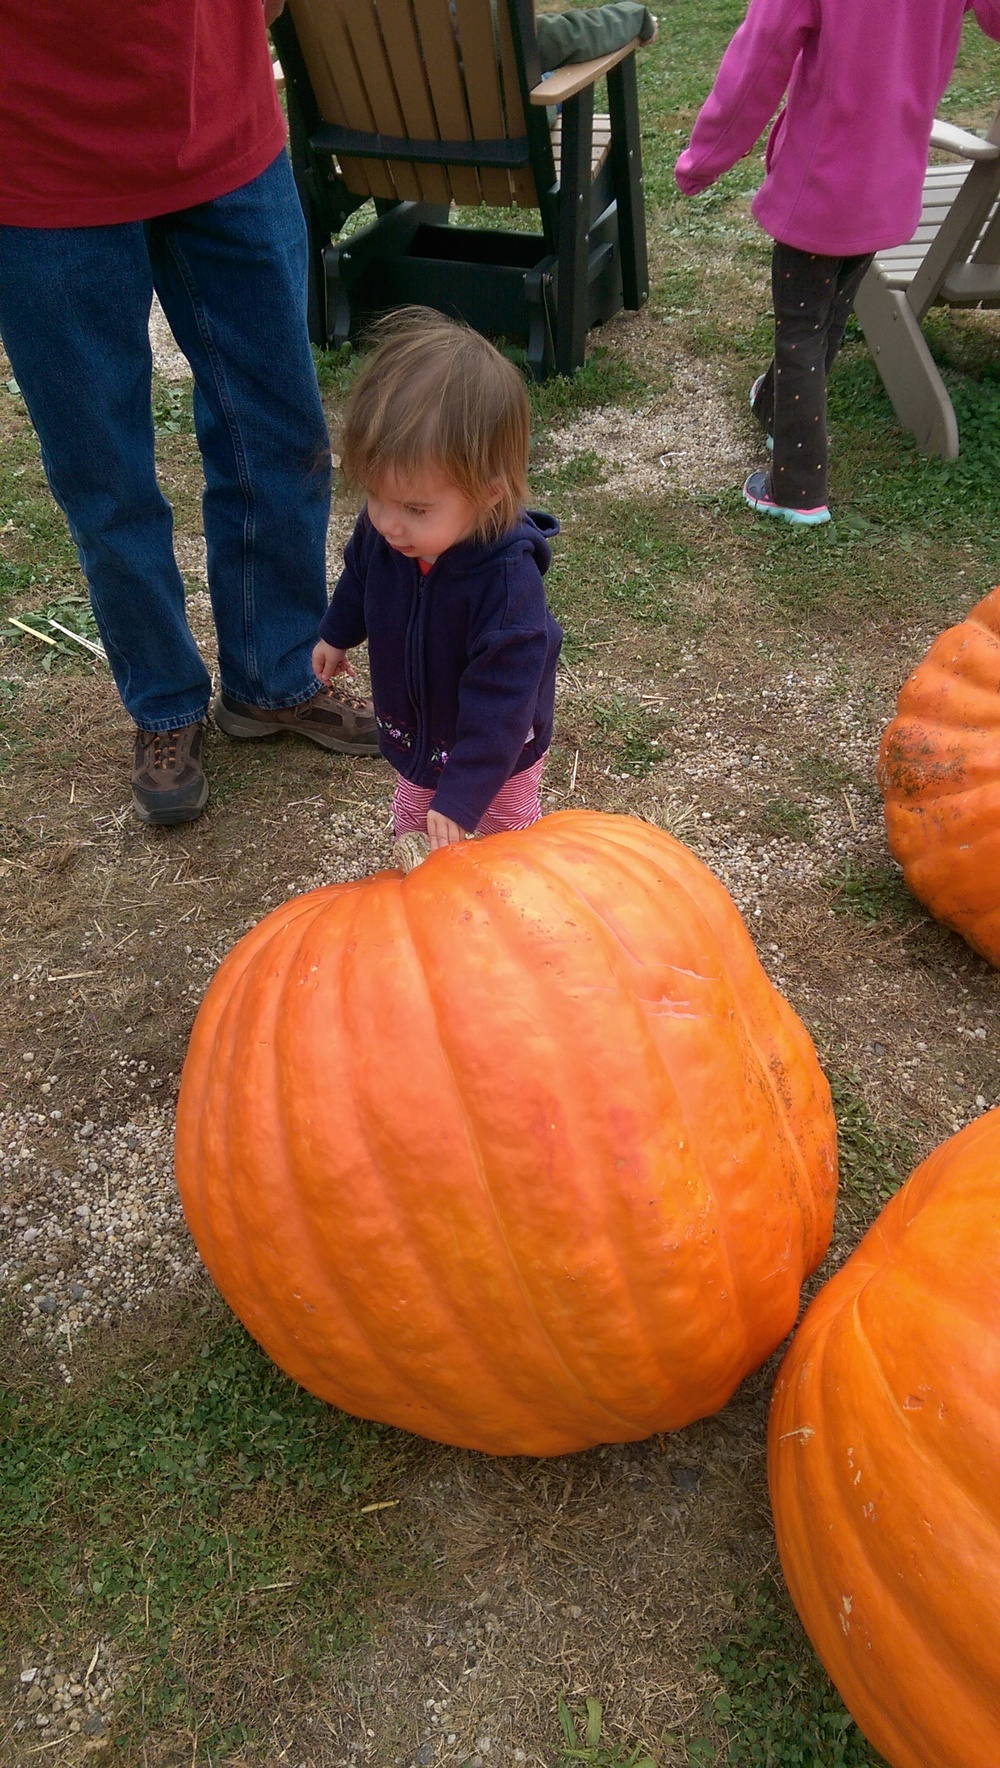 Pumpkins bigger than Cece